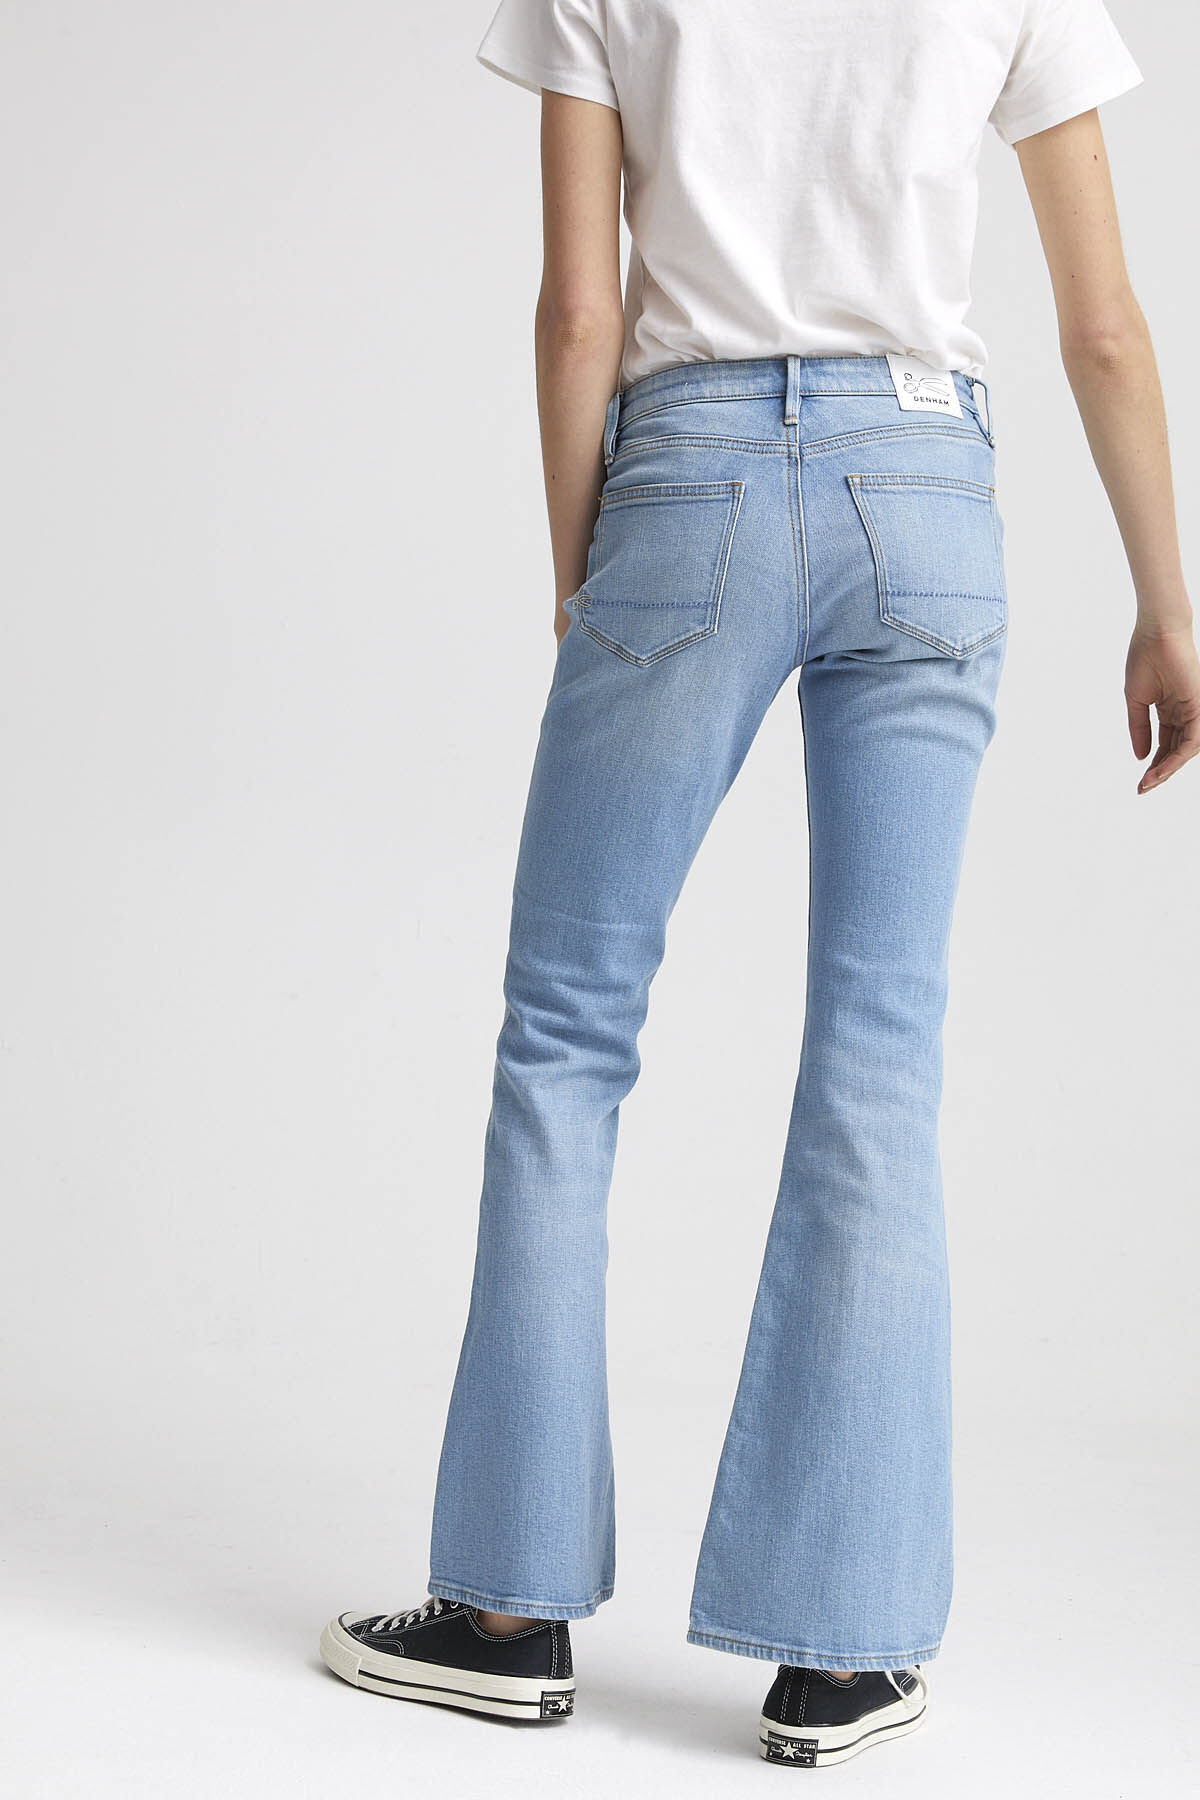 FARRAH Light, Comfort Stretch Denim - Flare Fit